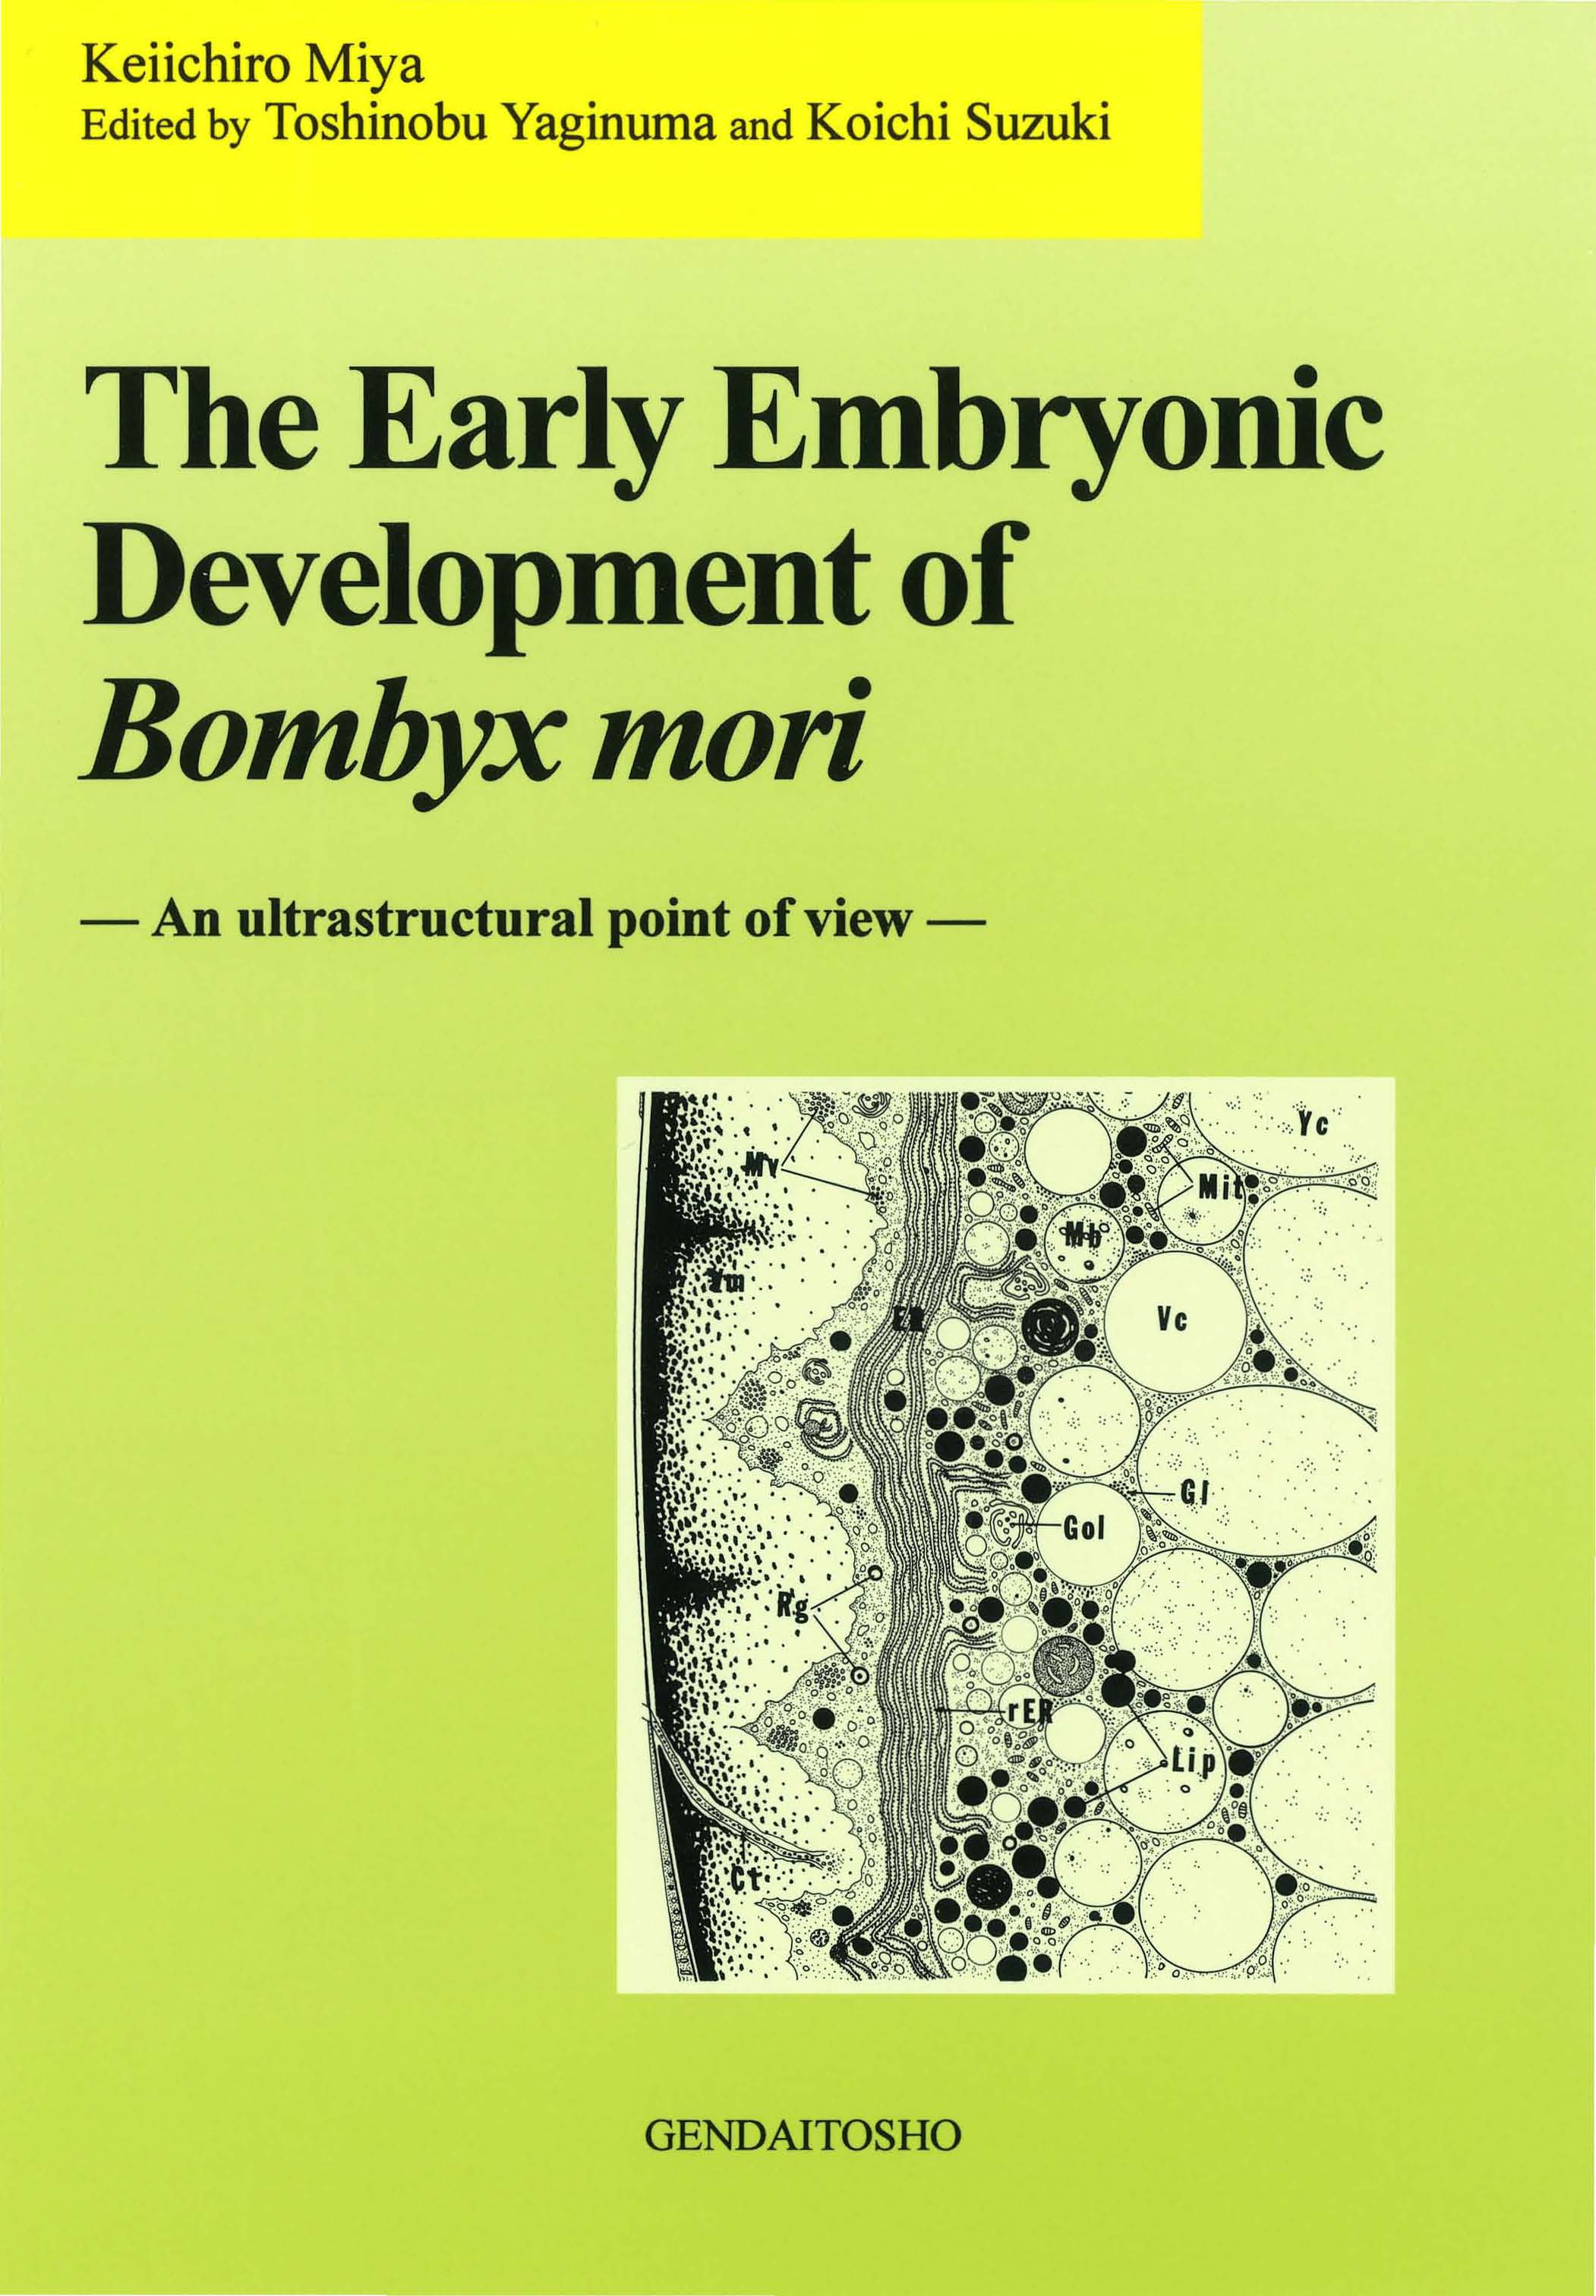 The Early Embryonic Development of Bombyx mori